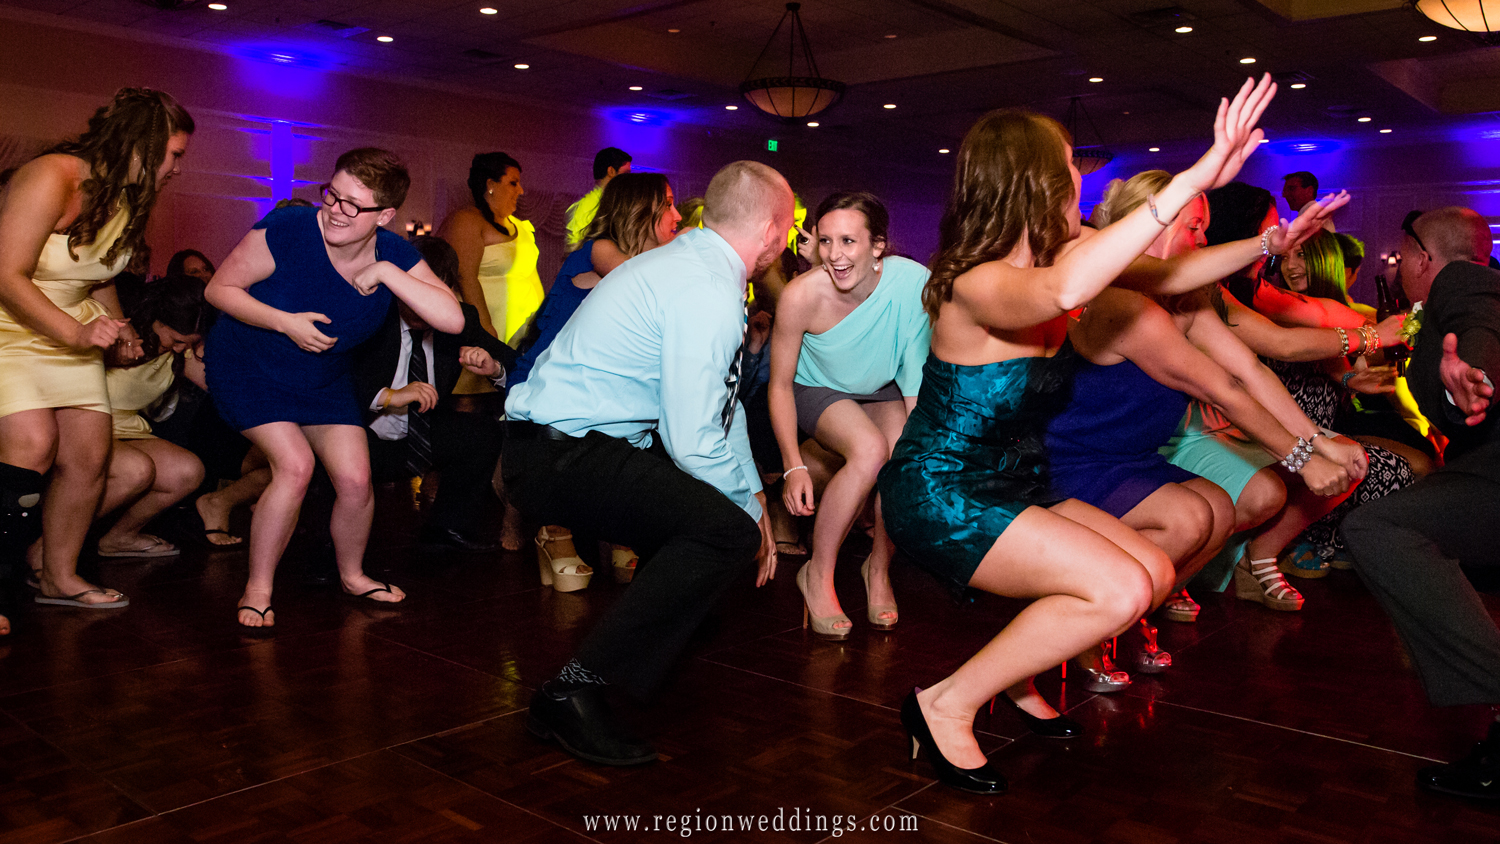 The dance floor at the Banquets of St. George is filled to capacity at a summer wedding reception in Schererville, Indiana.